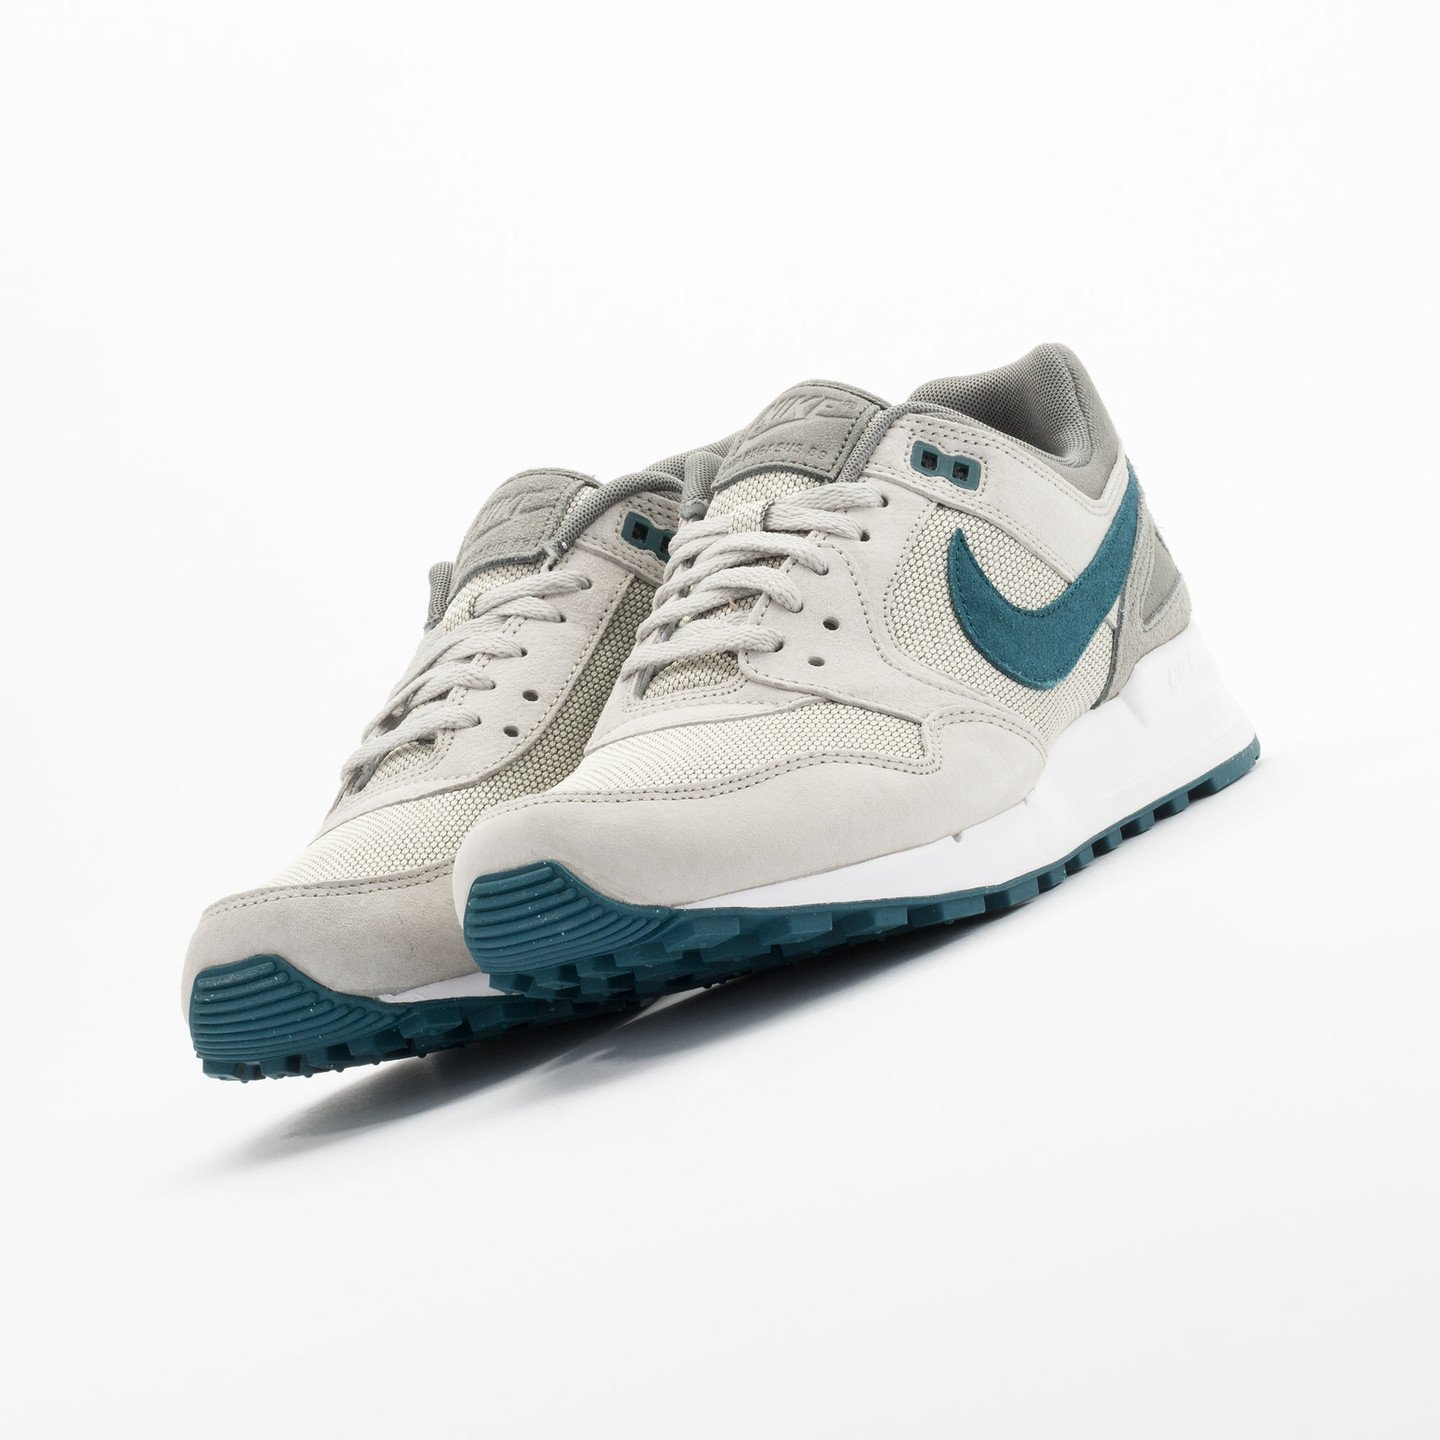 Nike Air Pegasus 89 Premium Lunar Grey / Teal - Tumbled Grey 724269-030-47.5